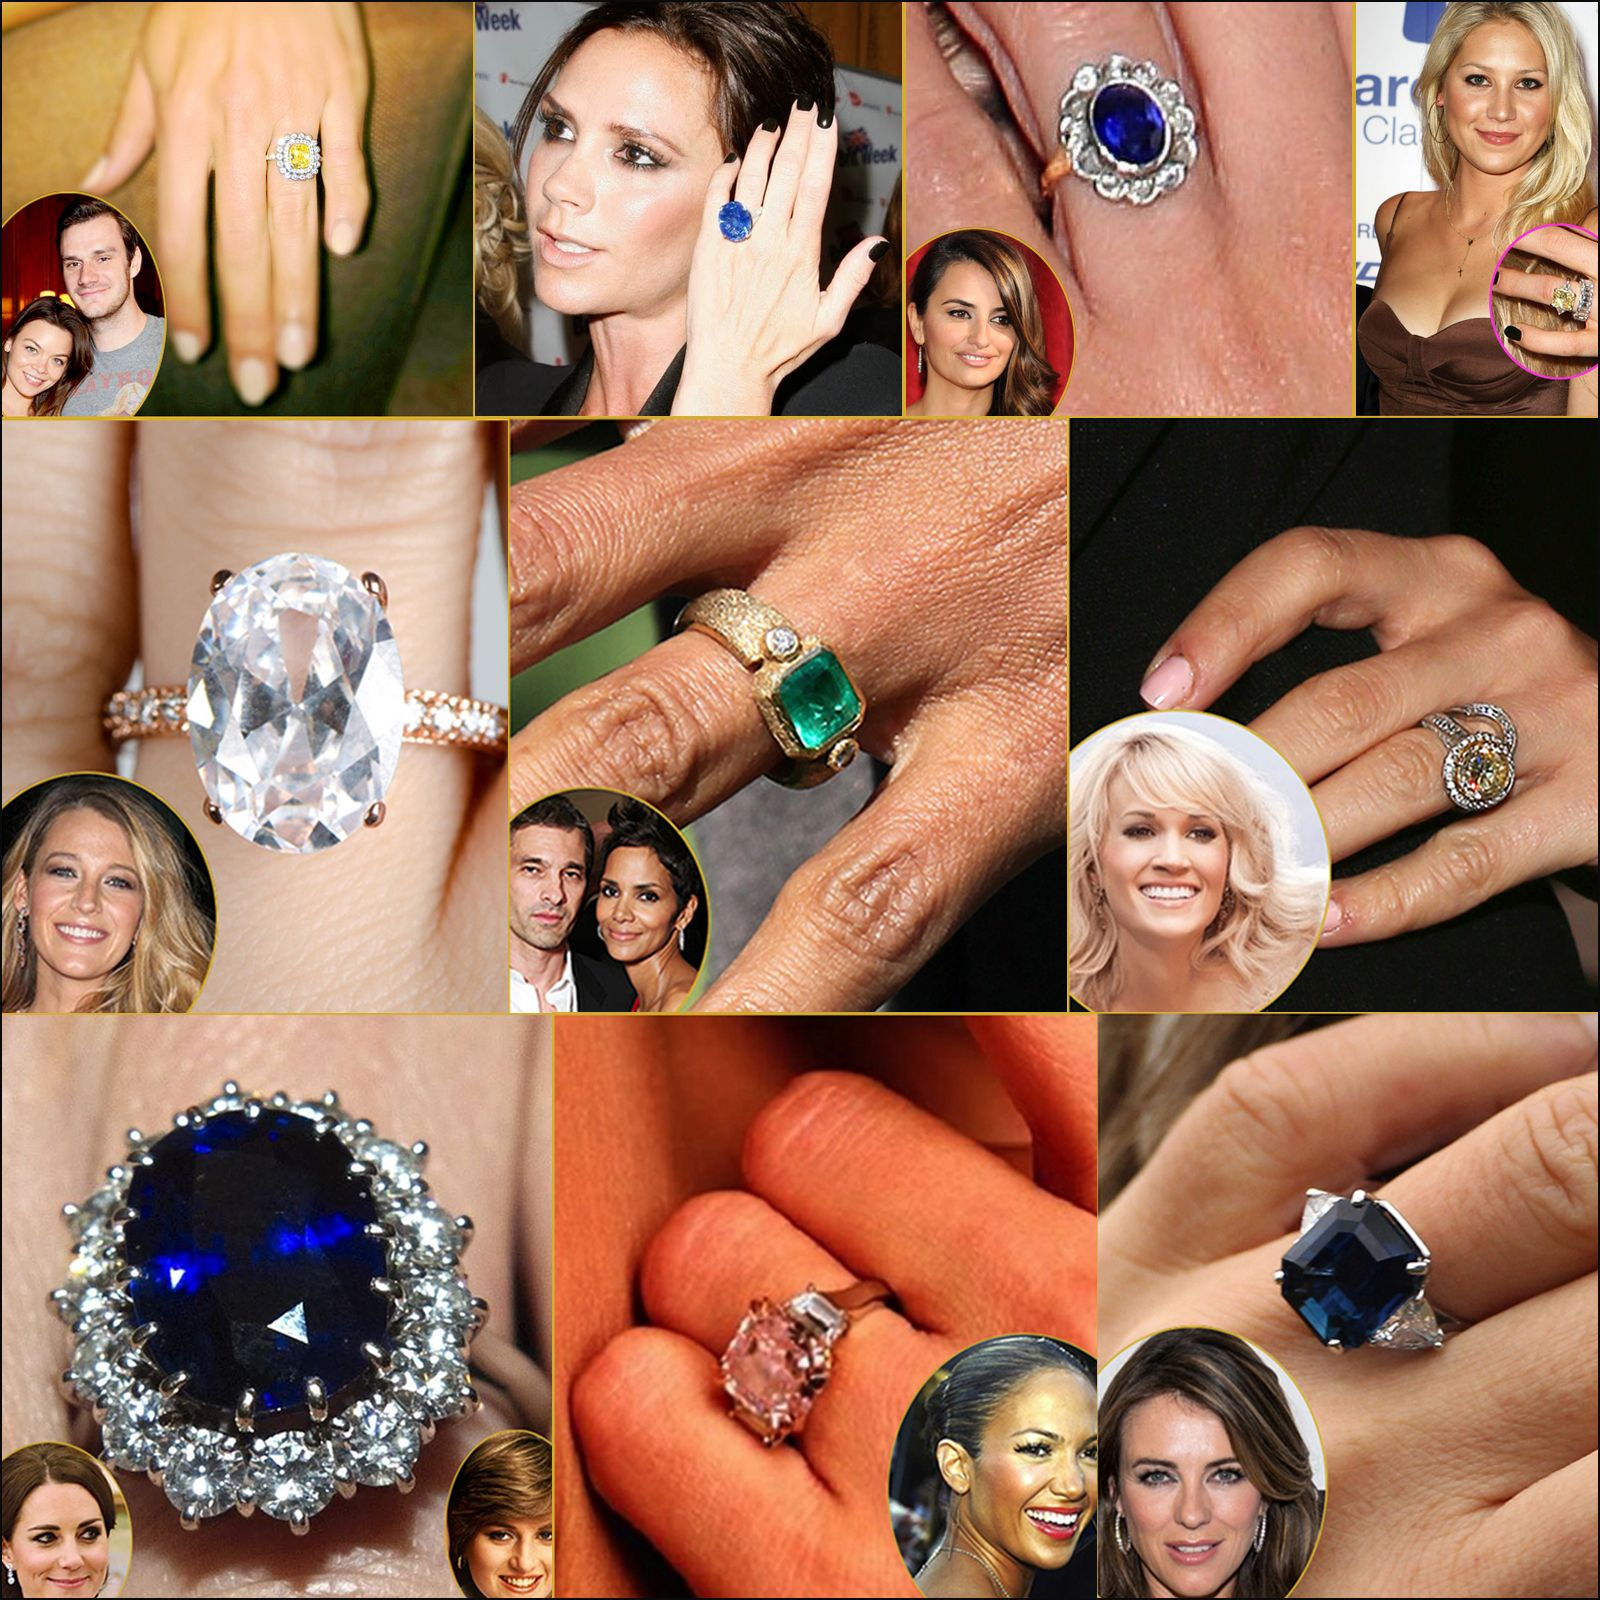 michelle engagement wedding obama famous elegant rings ring new of most